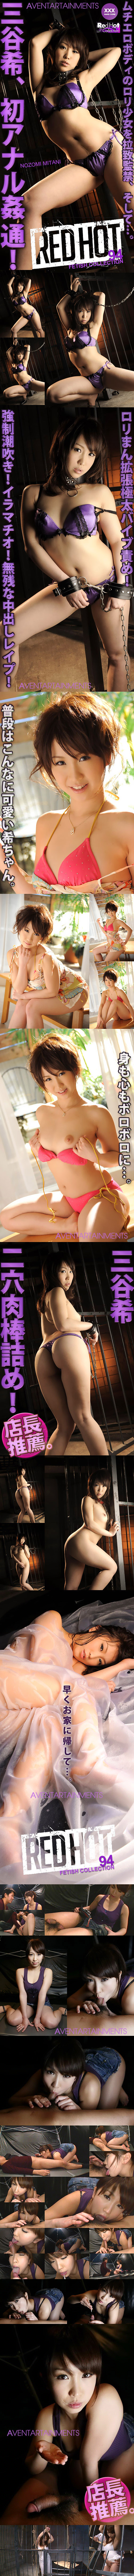 [RED 119] Red Hot Fetish Collection Vol.94 : Nozomi Mitani 三谷希 Red Hot Fetish Collection Nozomi Mitani